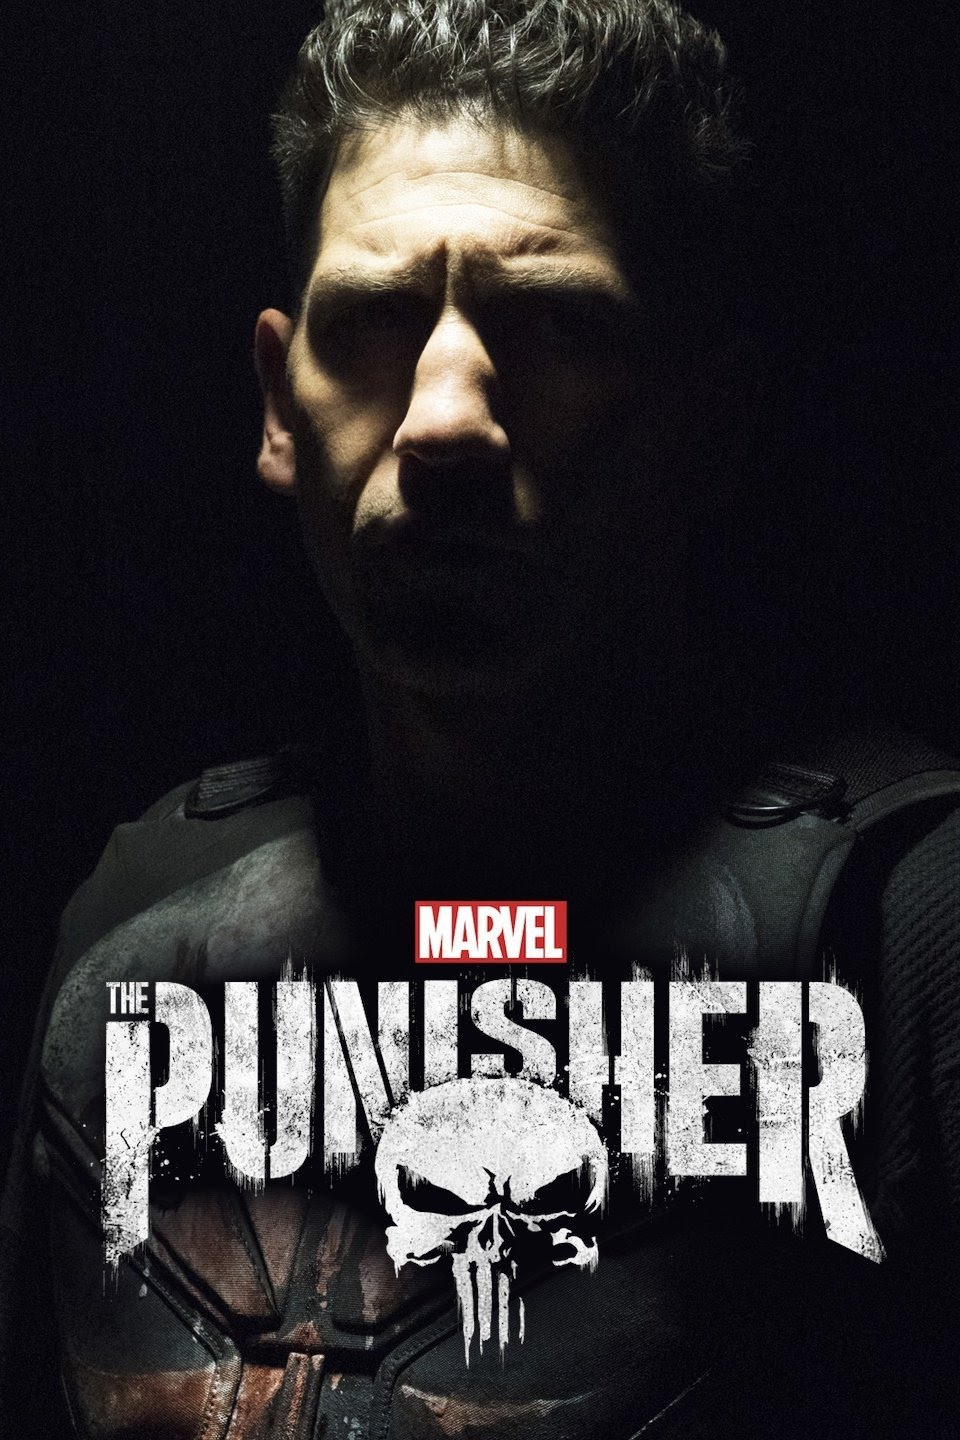 Marvel's The Punisher S01 E10 Cut